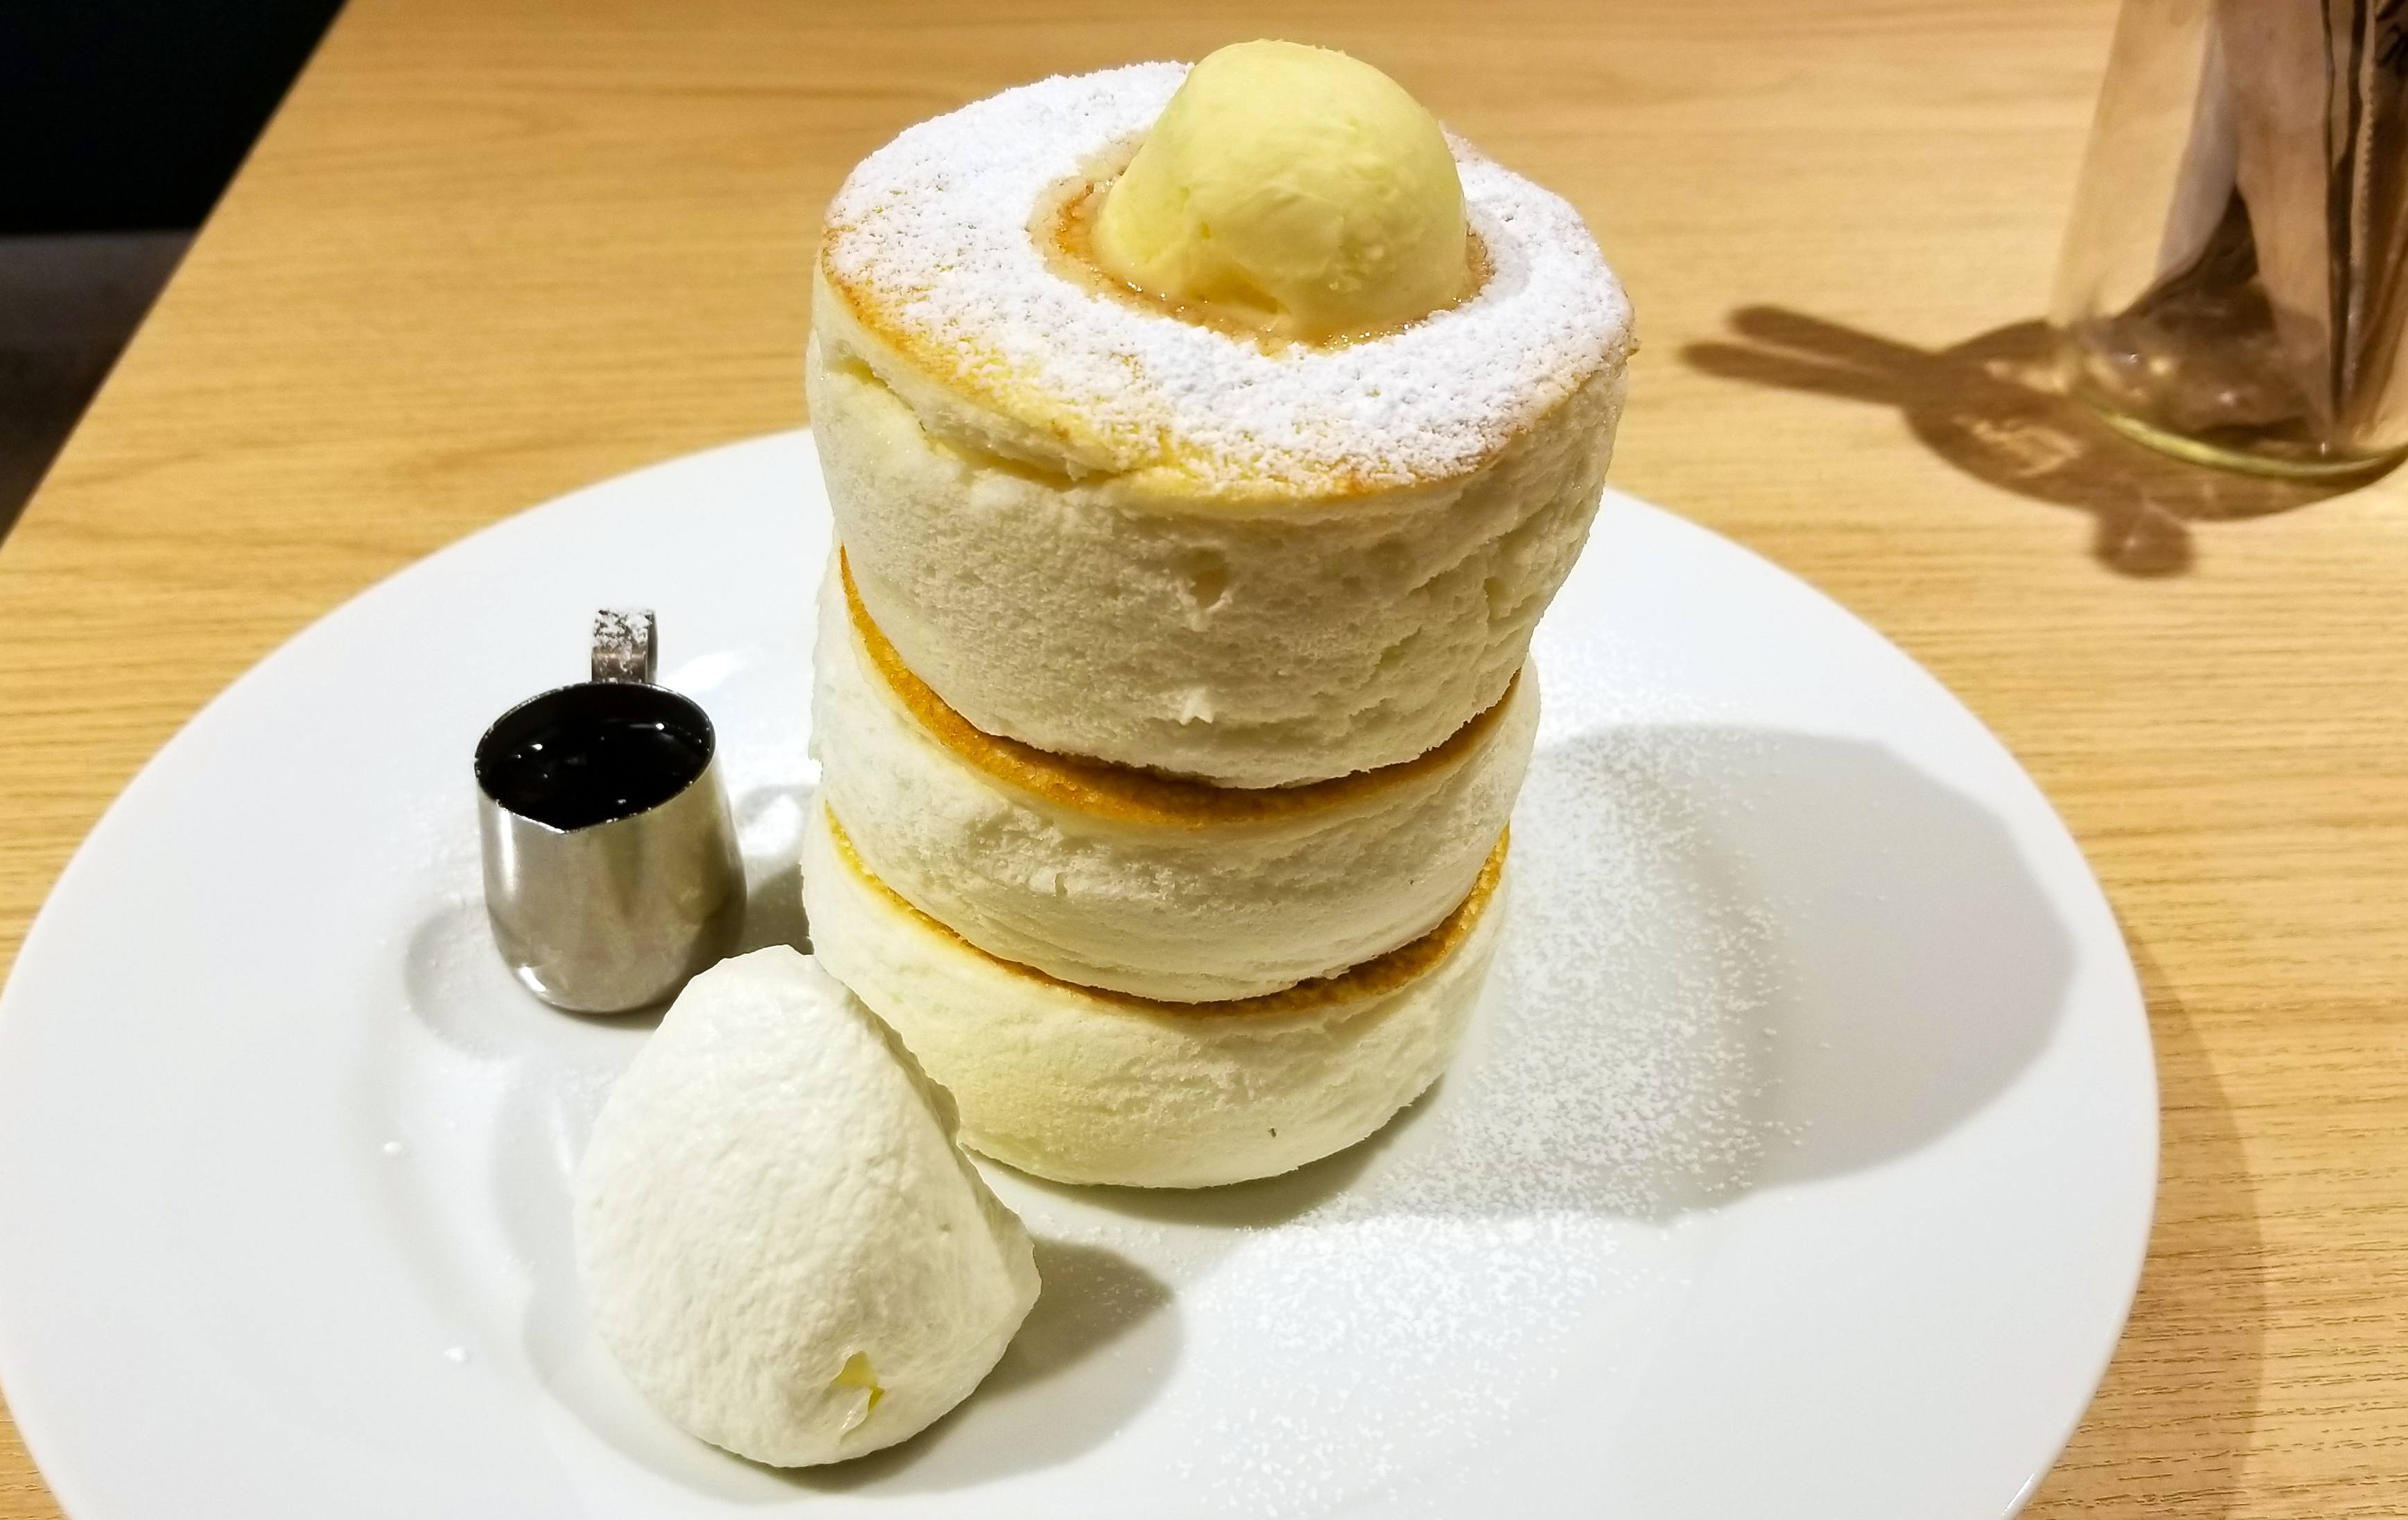 Learn about simple, easy, fluffy japanese pancakes including the best Japanese style hot cake recipe, mix, batter, mold and ingredients.